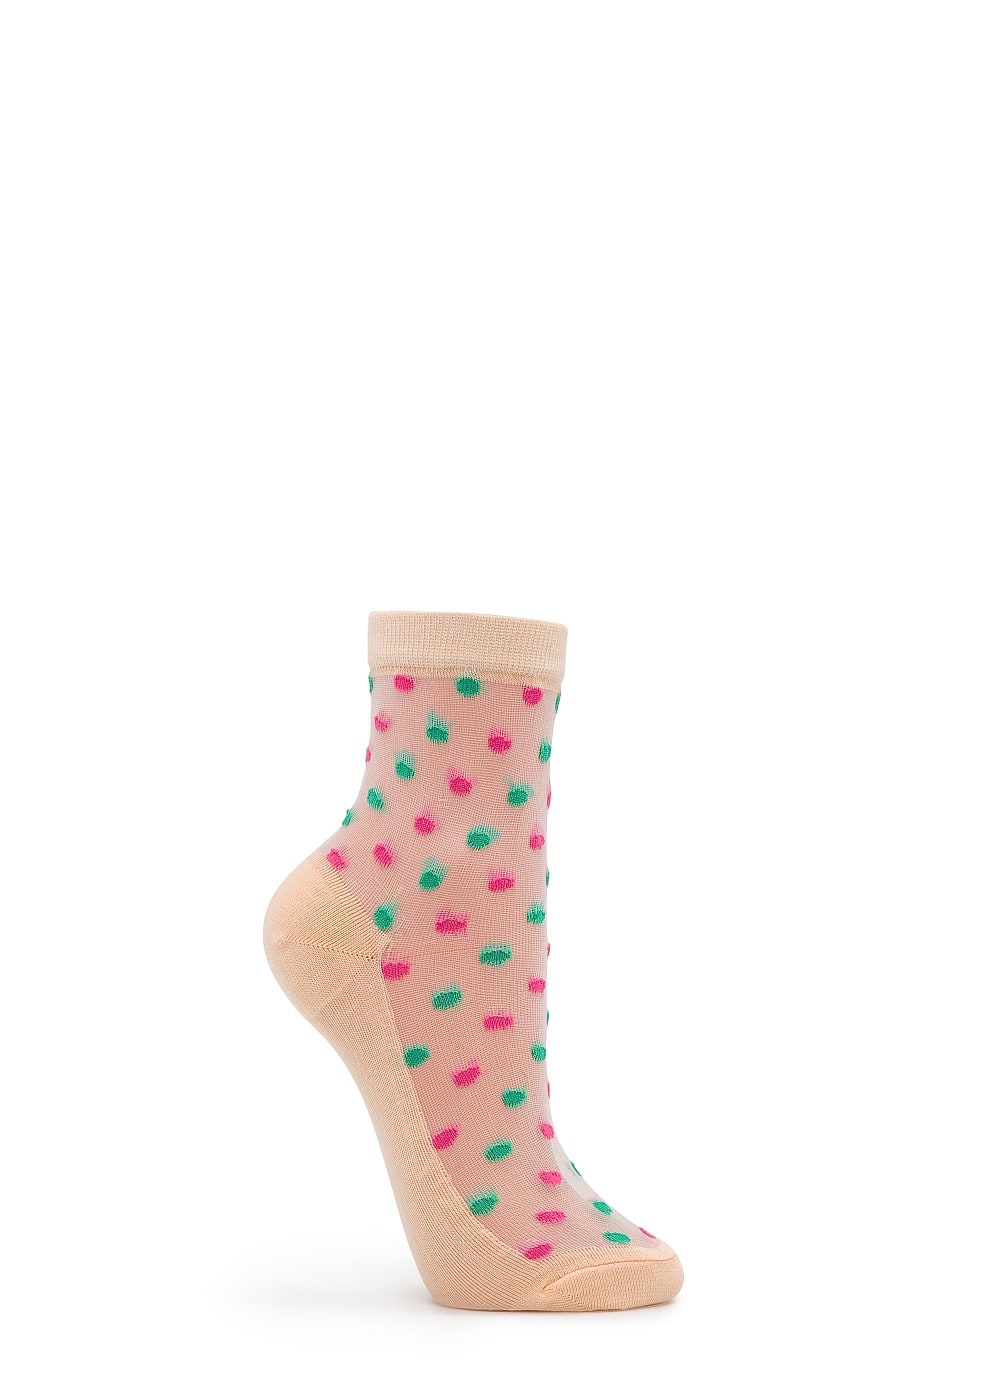 Polka-dots sheer socks